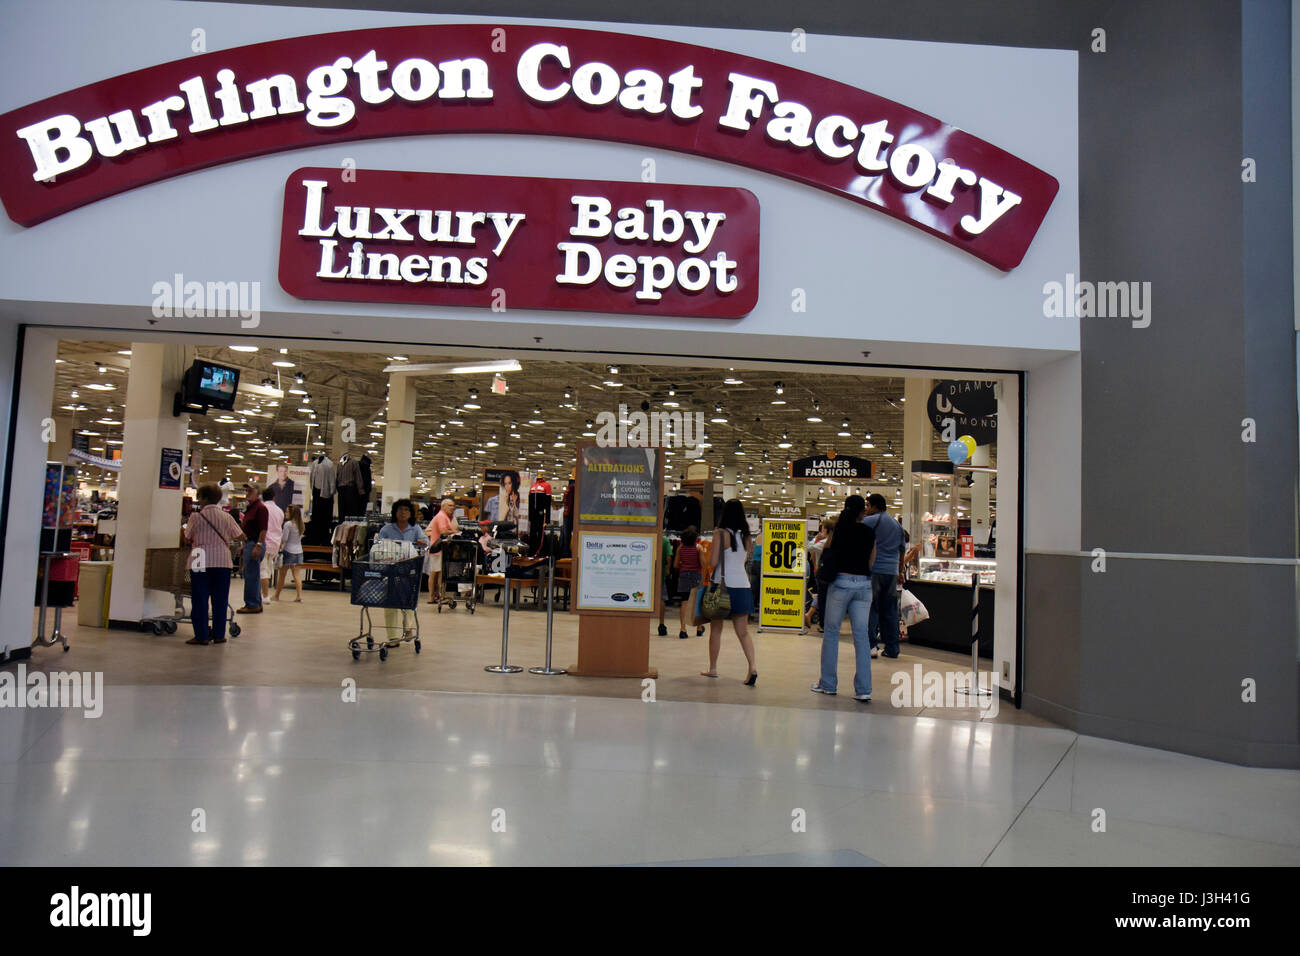 We are conveniently located next to Carolina Premium Outlet Center in Smithfield, NC off I exit The Burlington, NC location is conveniently located off exit next to Burlington Coat Factory and Northern Tool directly facing I40/ We make your shopping experience easy with .